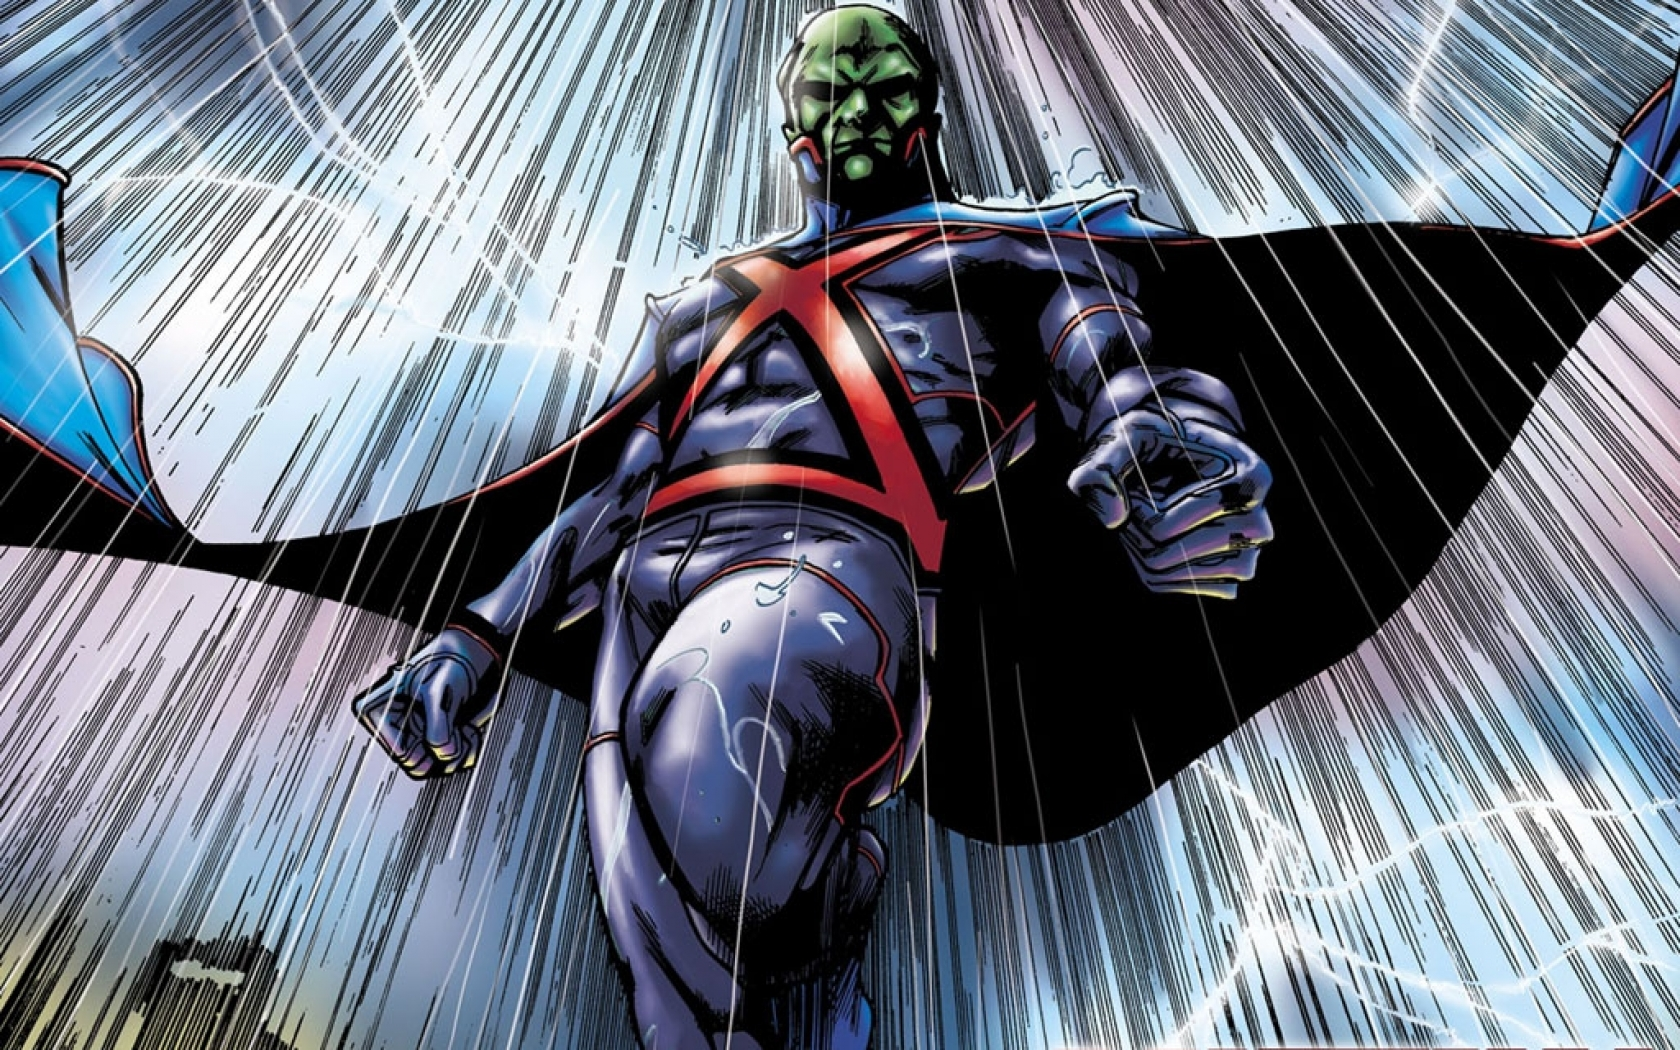 comics_dc_Martian_Manhunter_Wallpaper_1680x1050_www.wallpaperhi.com (3)